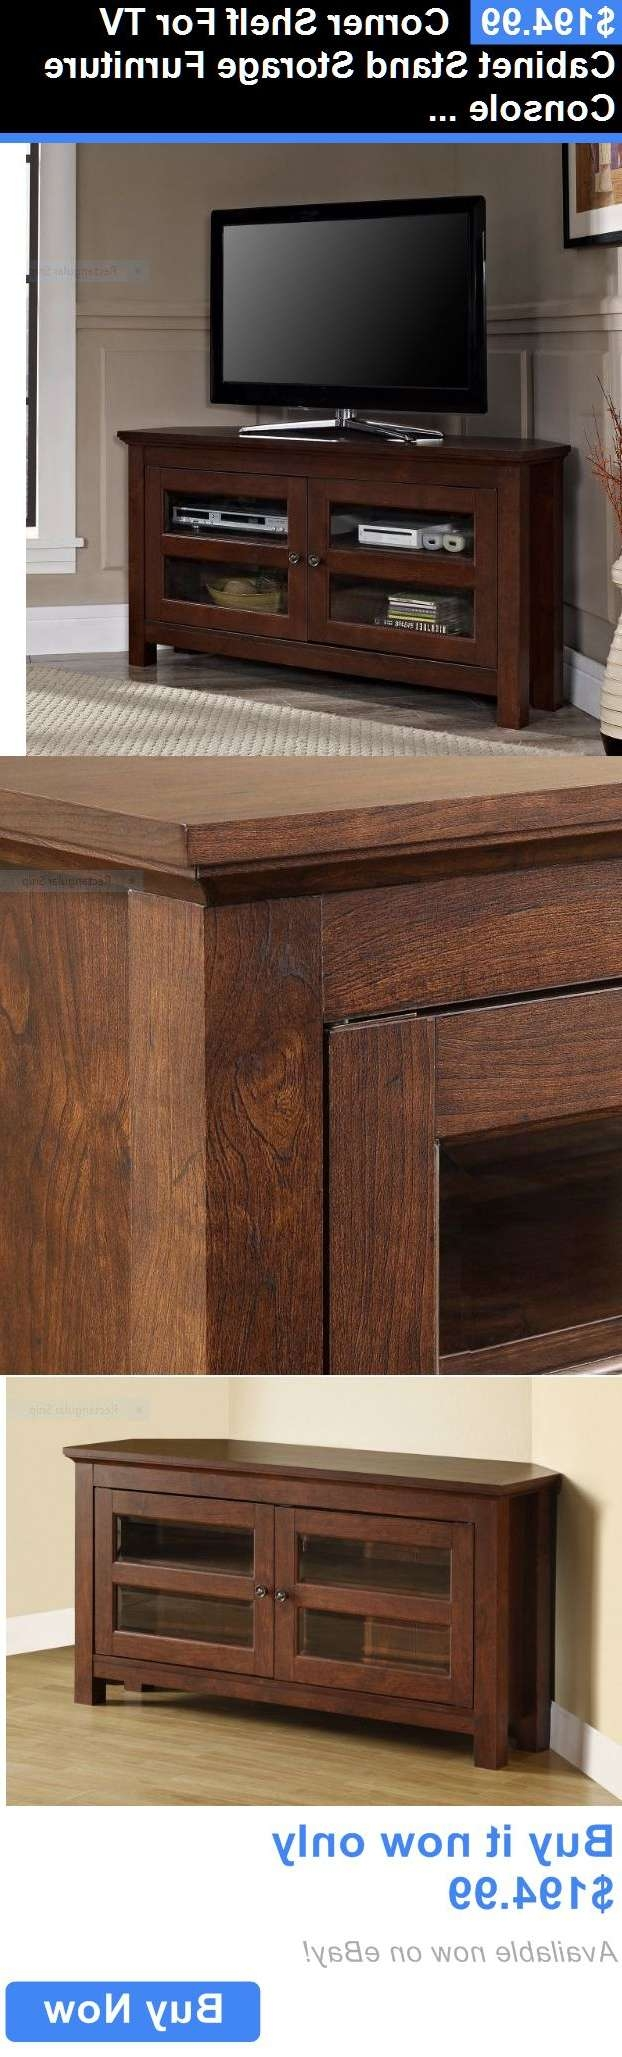 Tv : Tv Stand Furniture Stunning Bedford Tv Stands Amazoncom We Within Bedford Tv Stands (View 14 of 15)